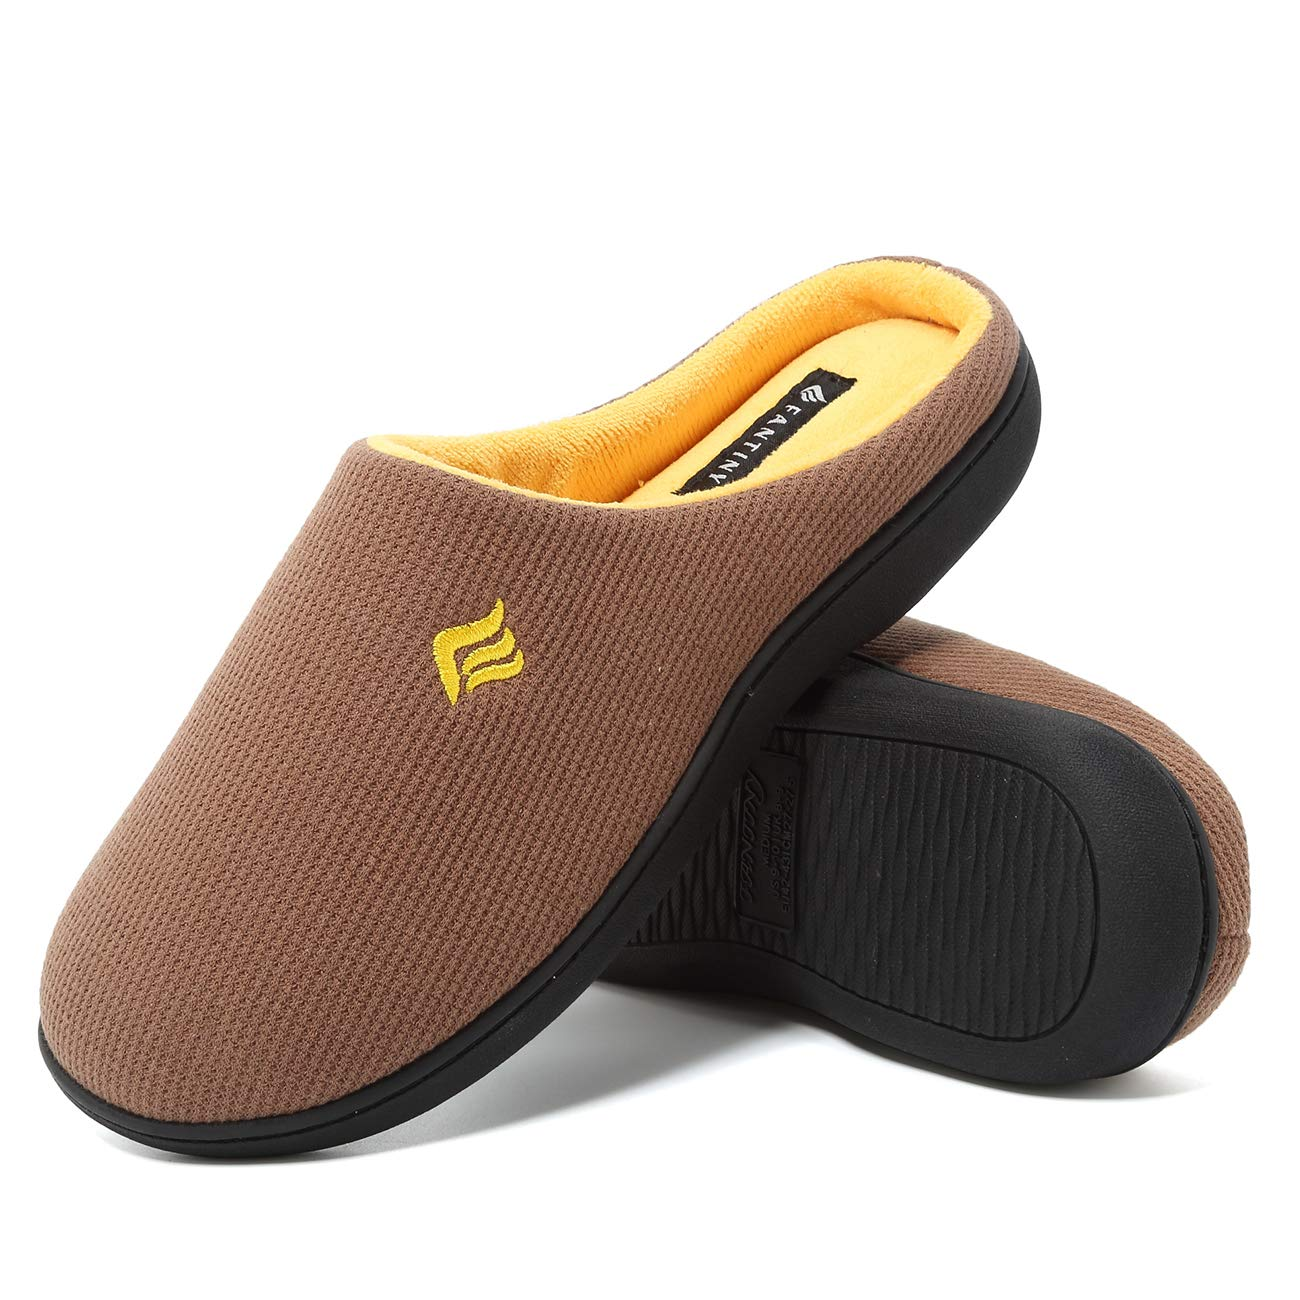 CIOR Fantiny Men's Memory Foam Slippers Slip-on Clog Scuff House Shoes Indoor & Outdoor